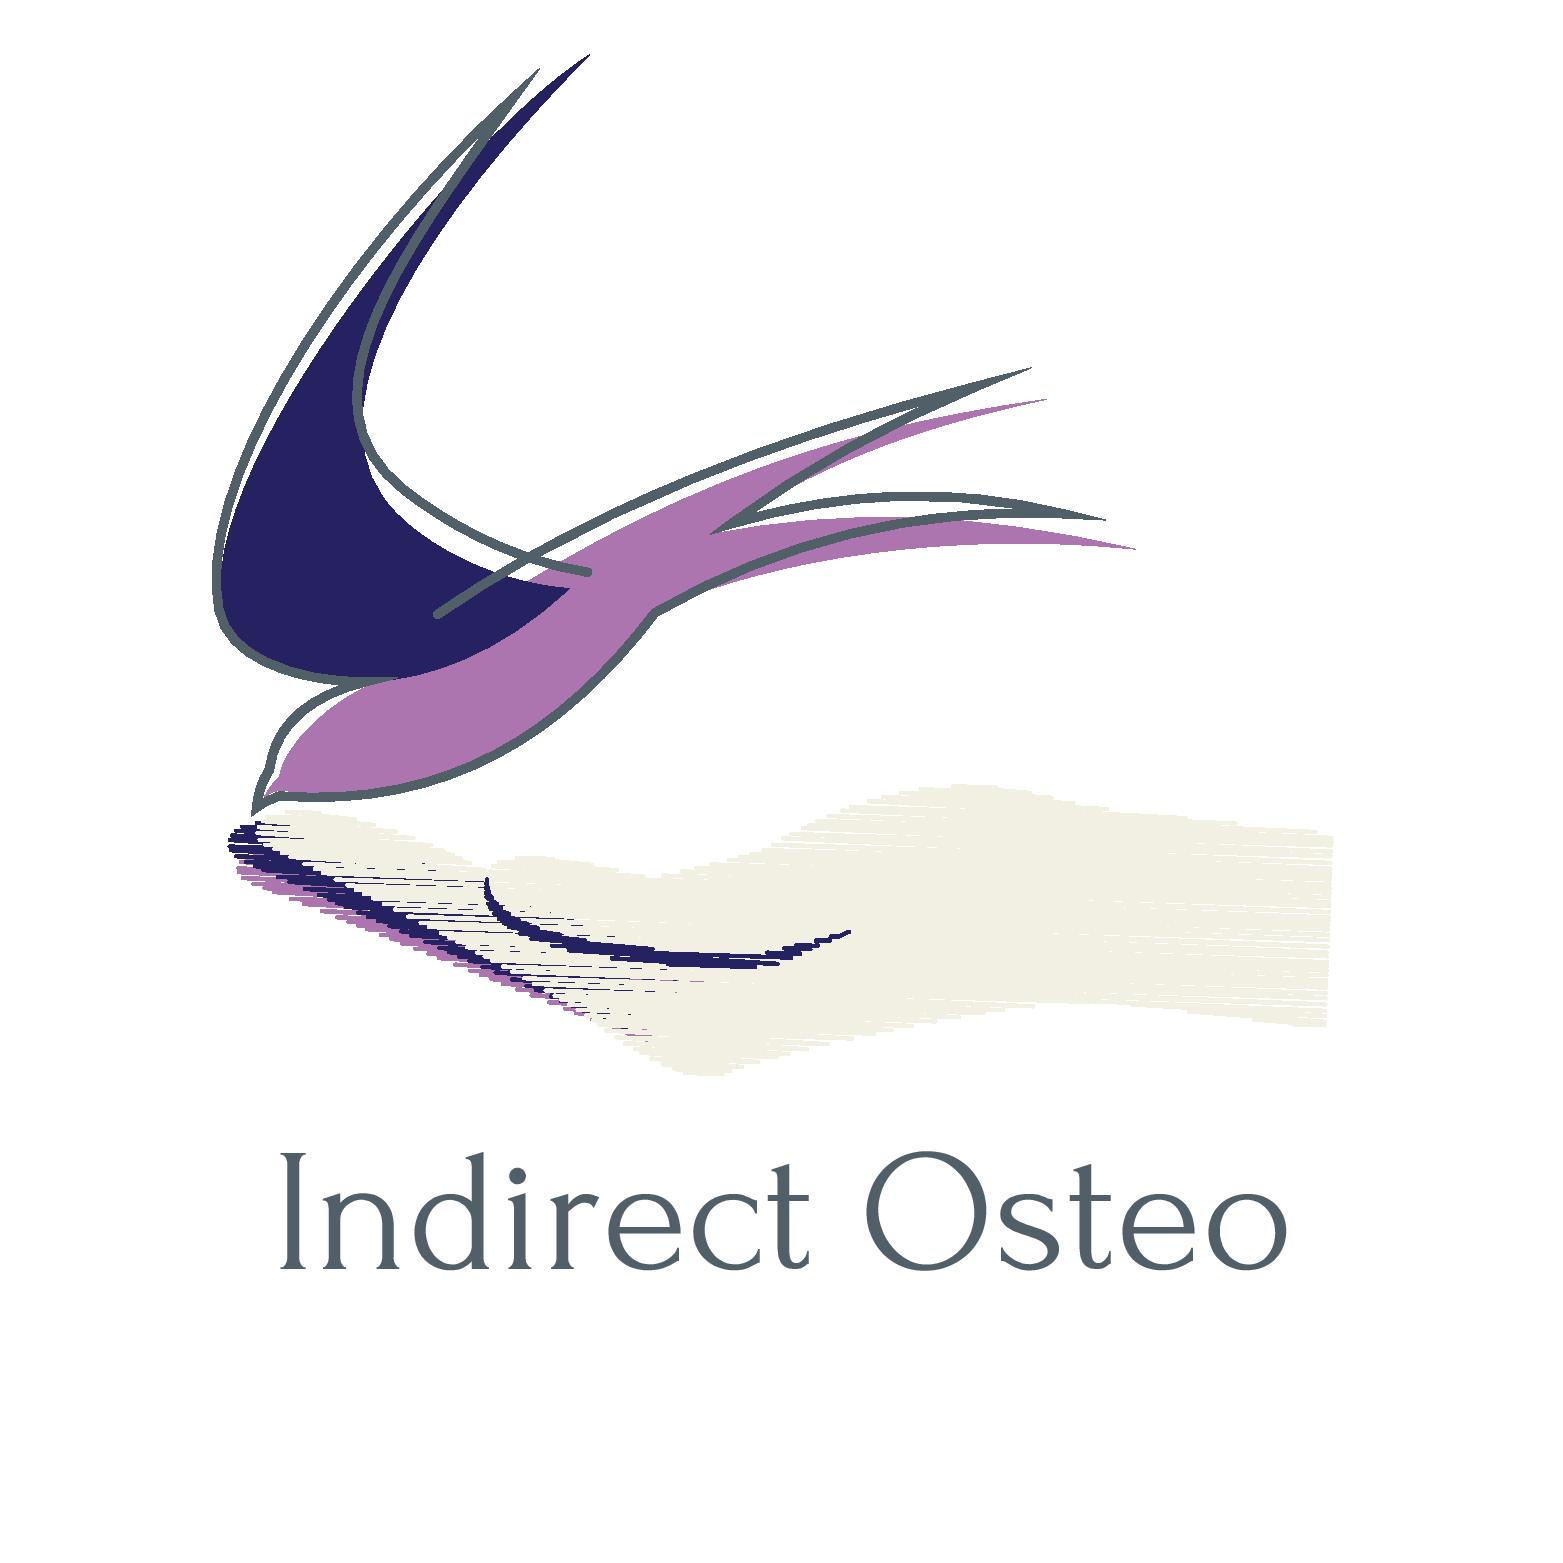 Teachings in indirect osteopathy